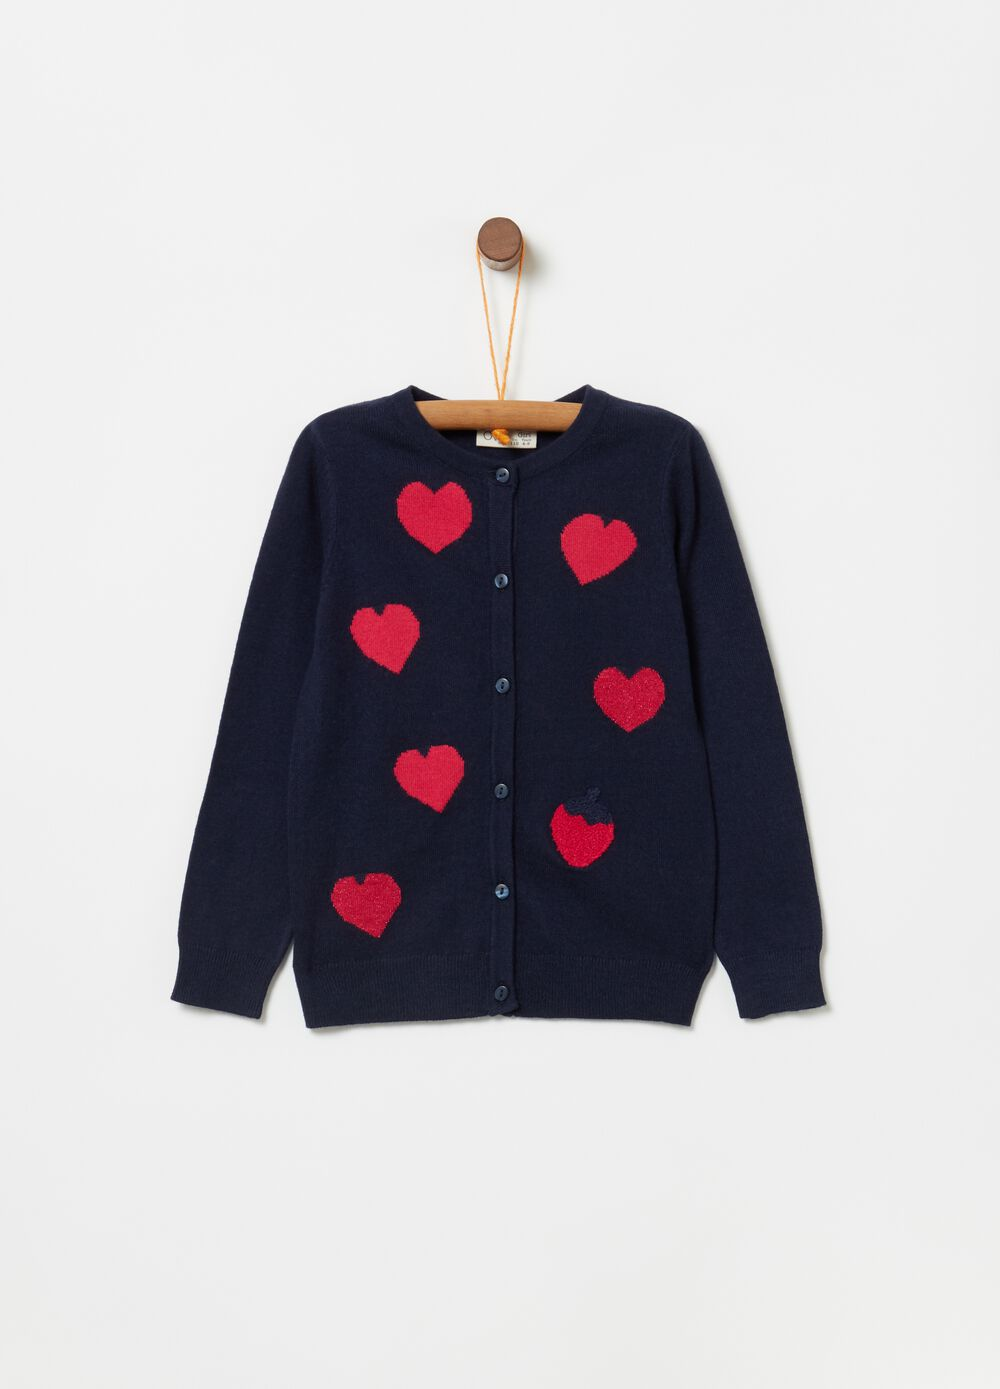 Knit cardigan with hearts